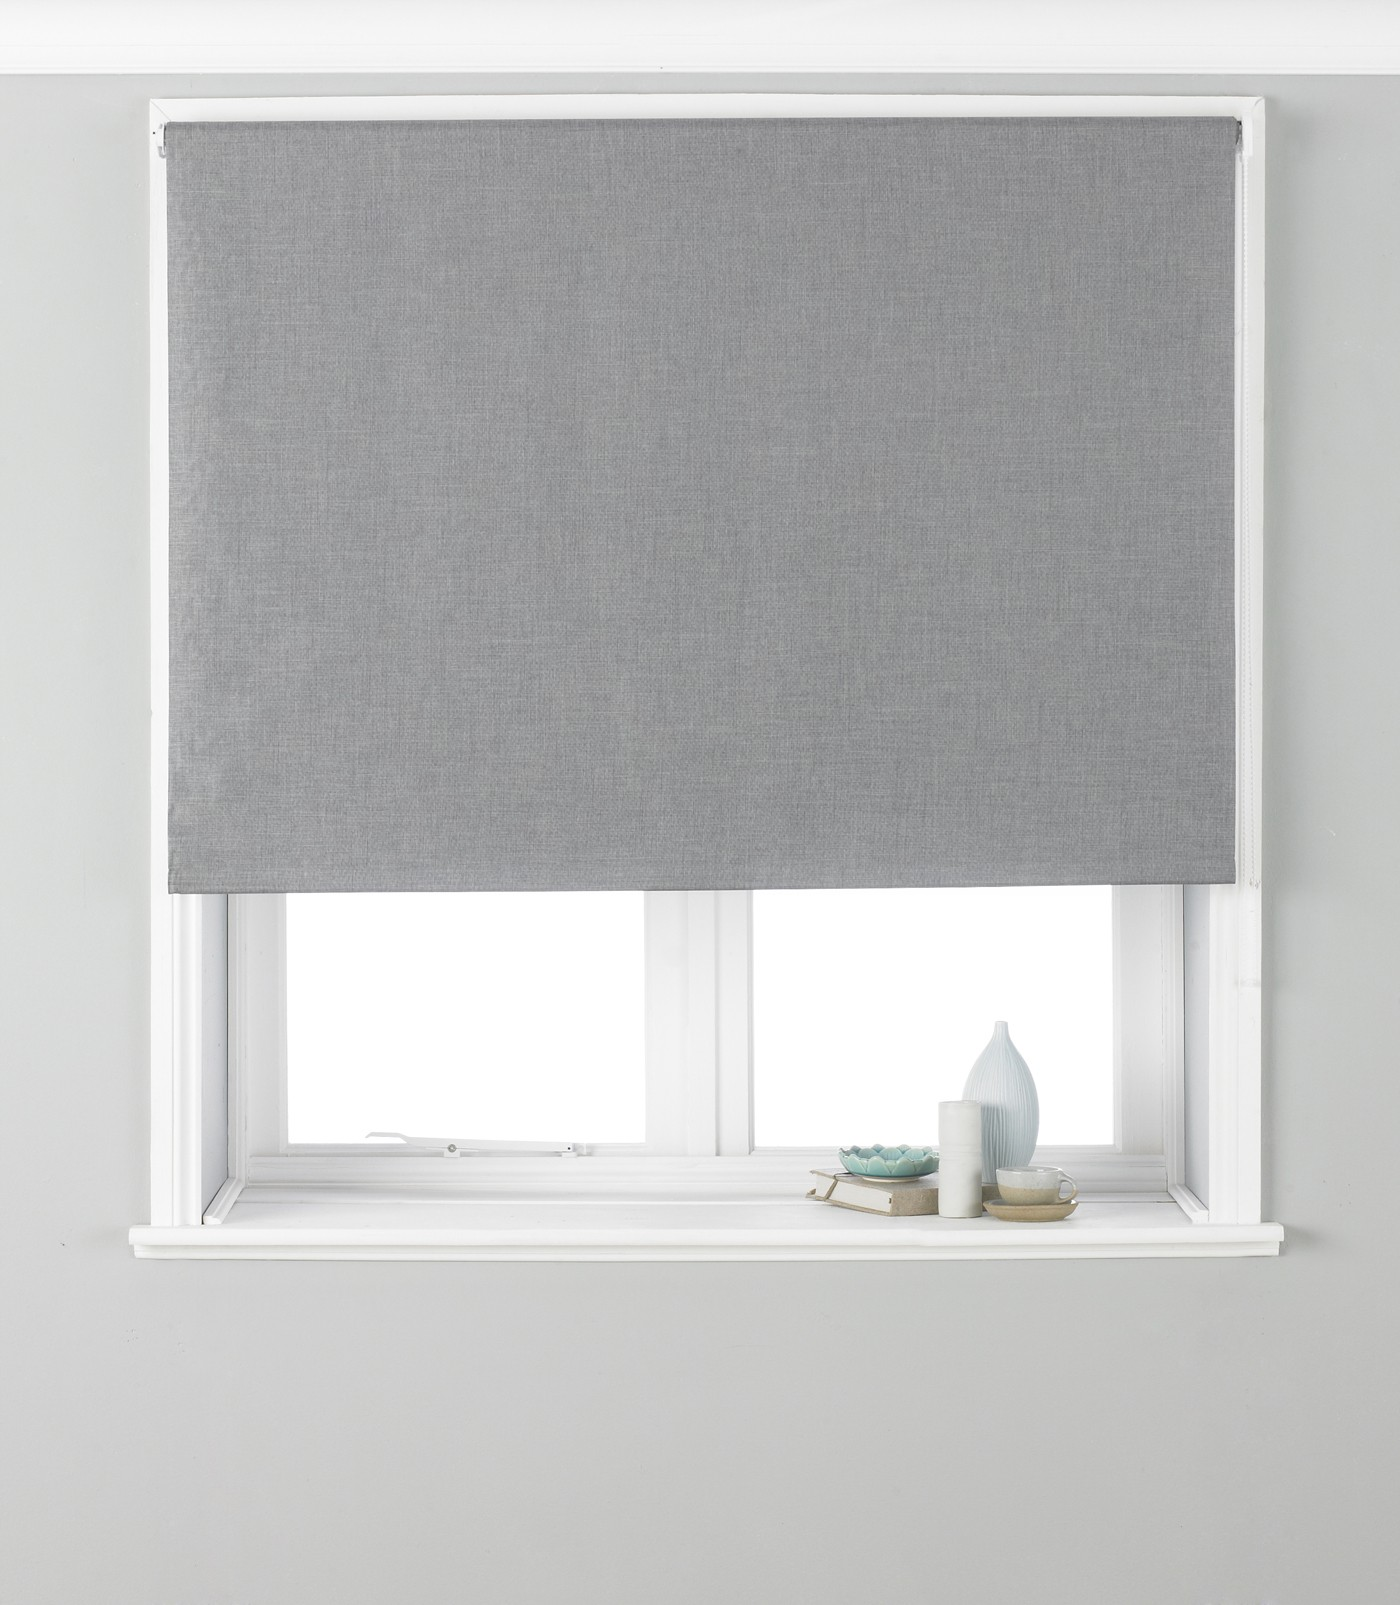 The Home Furnishings Company Grey Eyelet Blackout Curtains, Blind and Cushion